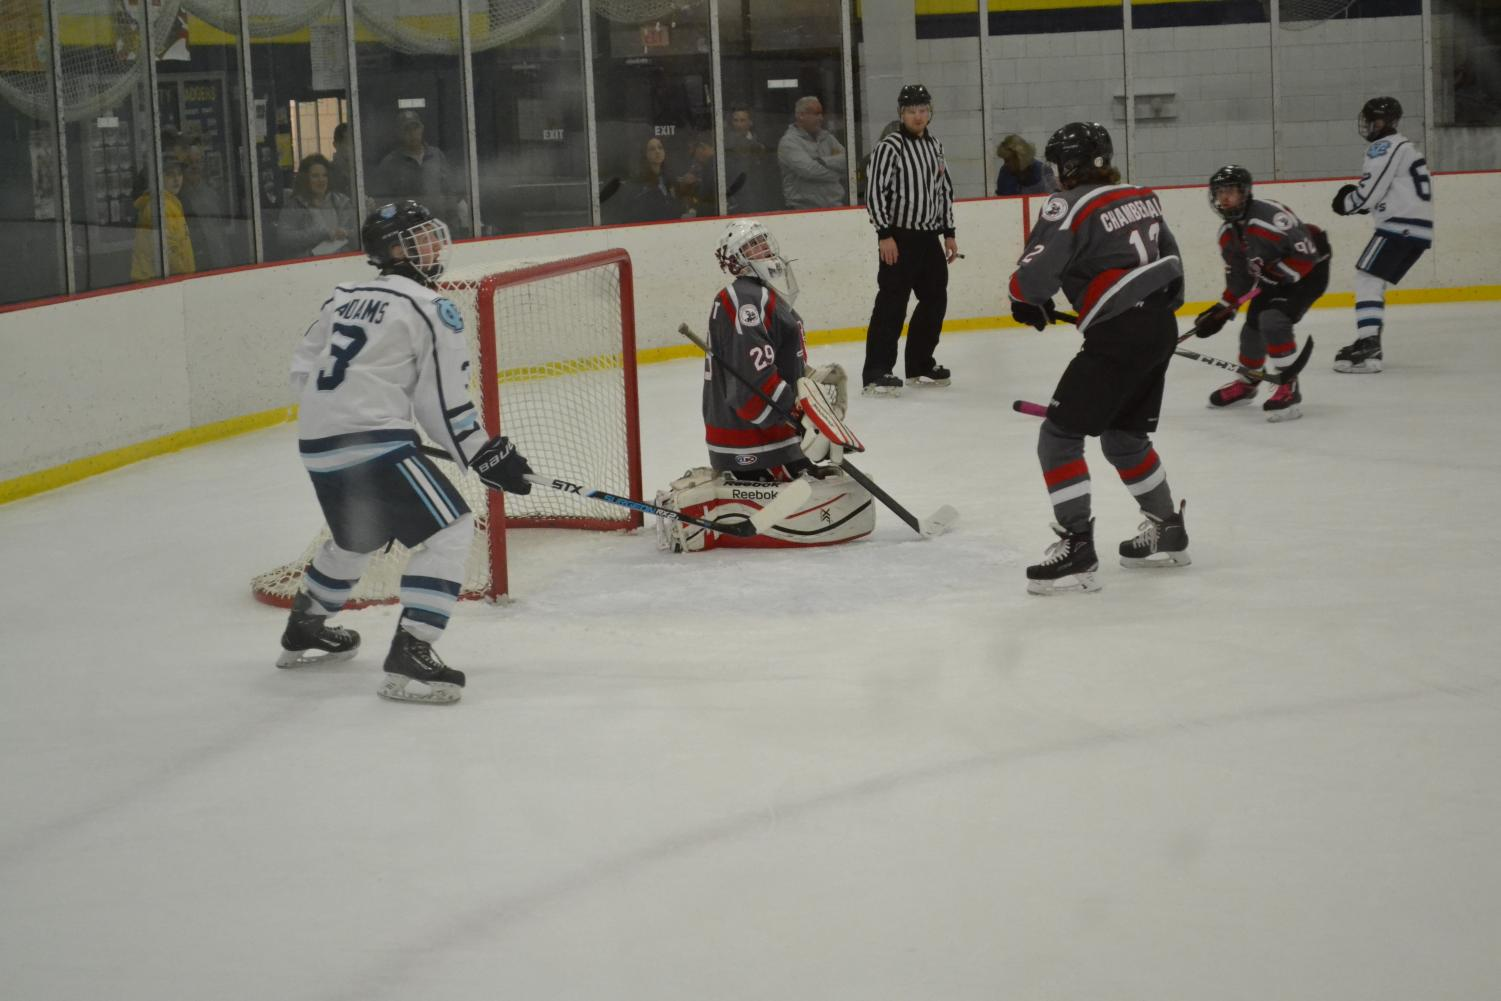 Senior Riley Adams (left) is shown waiting by the net for the puck in the hopes of scoring at the game on Oct. 18